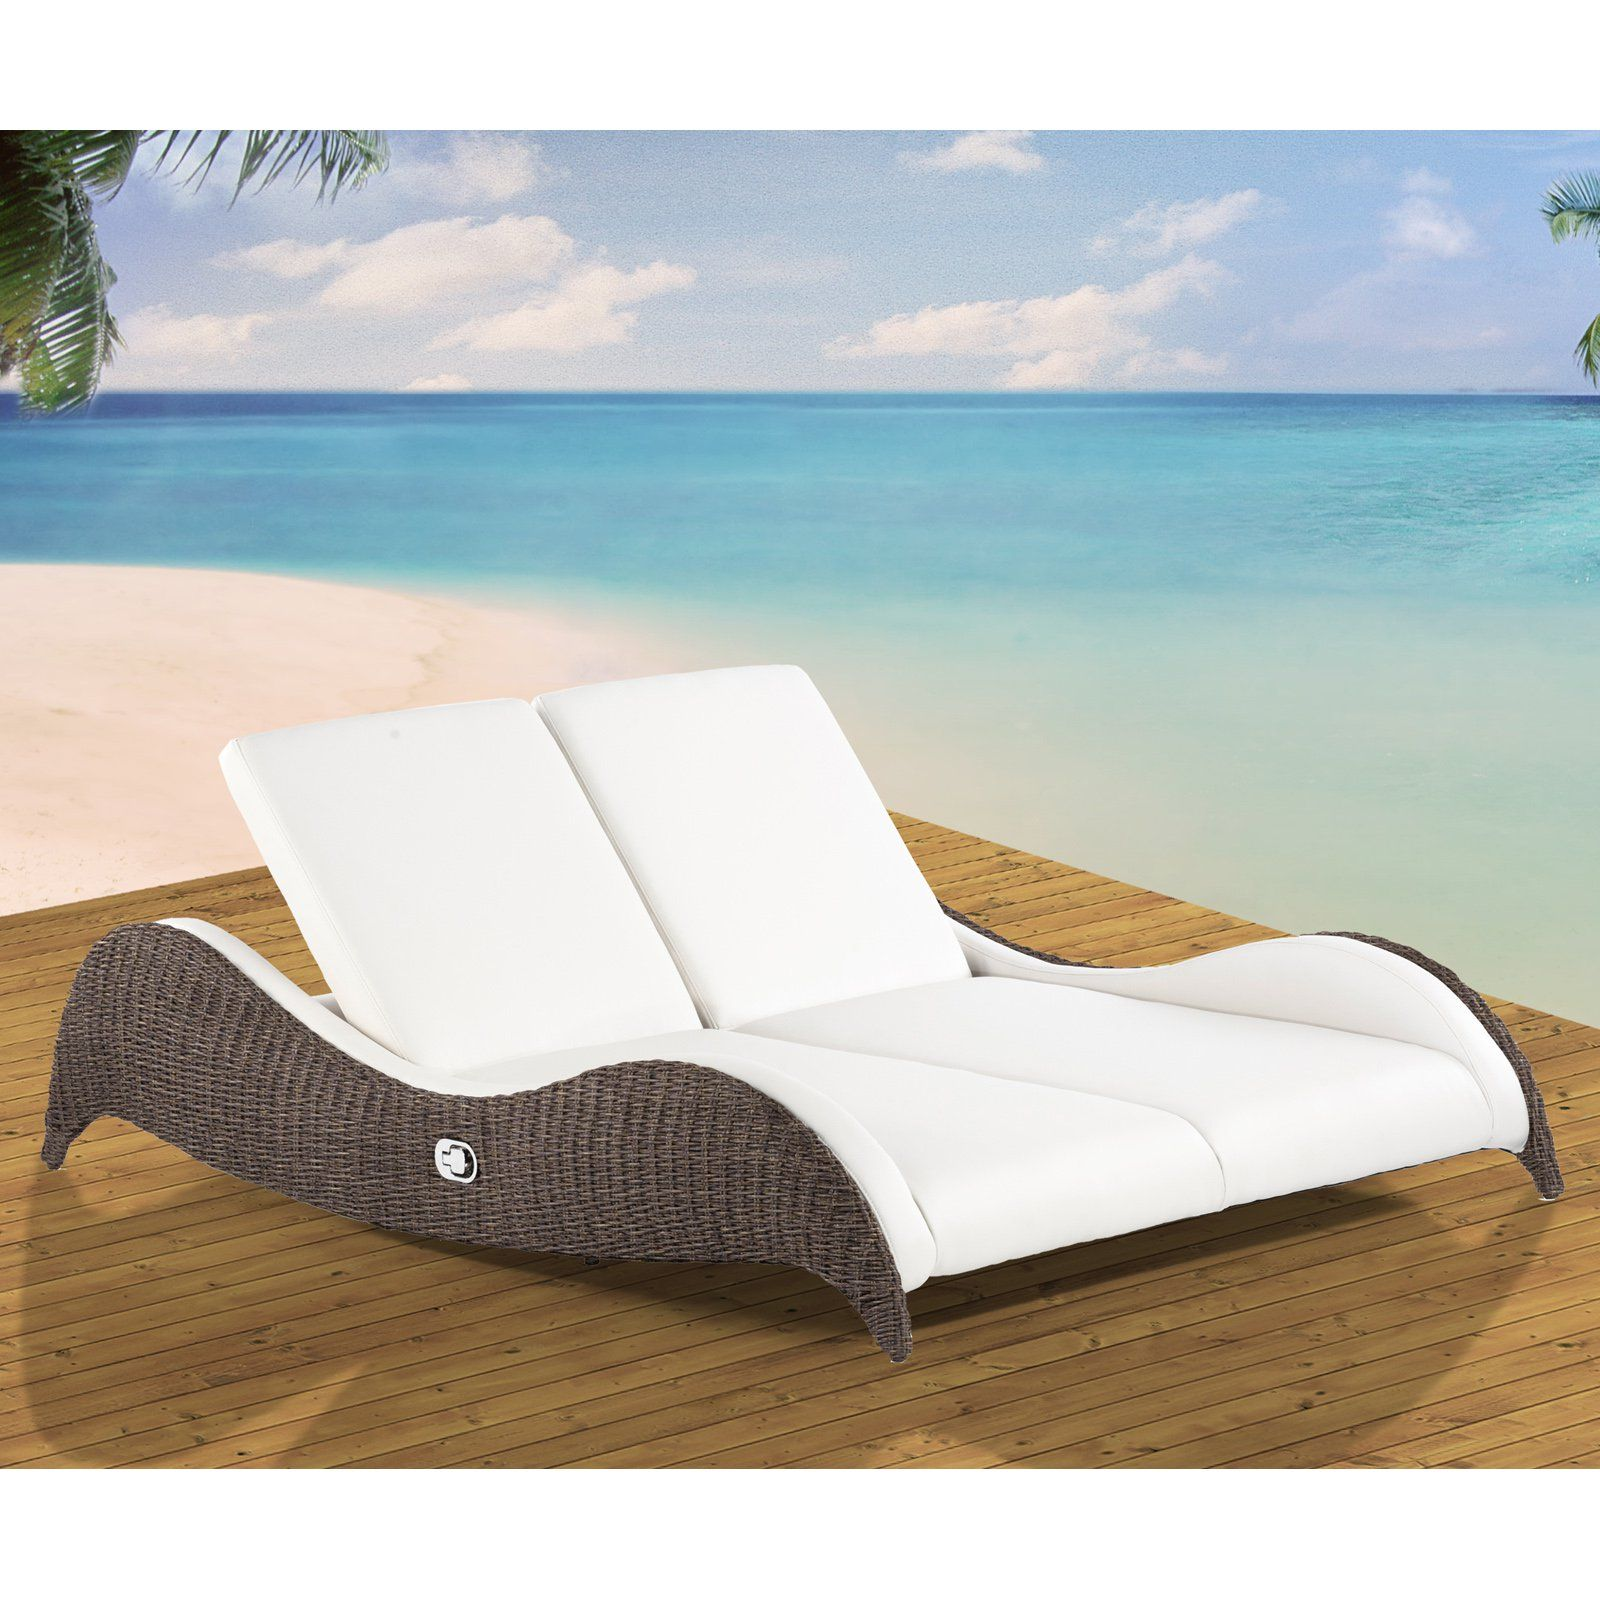 Domus Ventures Luxor Double Sunlounger Chaise Lounge | from ...